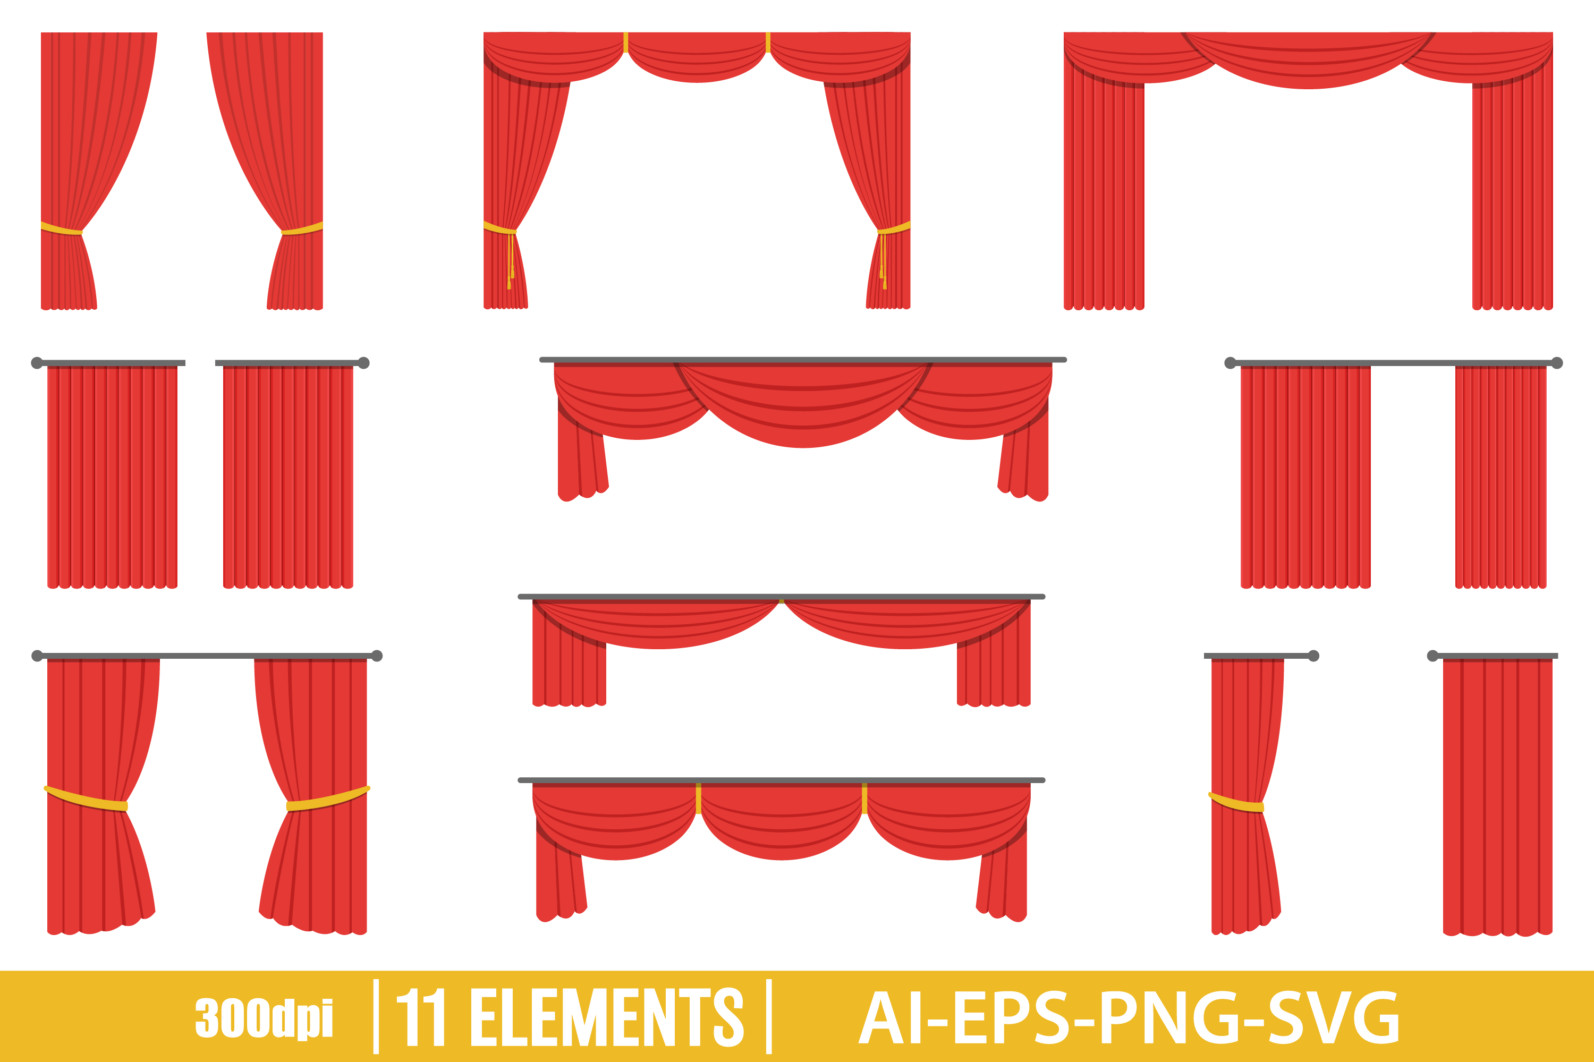 Theater curtain clipart vector design illustration. Theater curtain set. Vector Clipart Print - CURTAIN scaled -